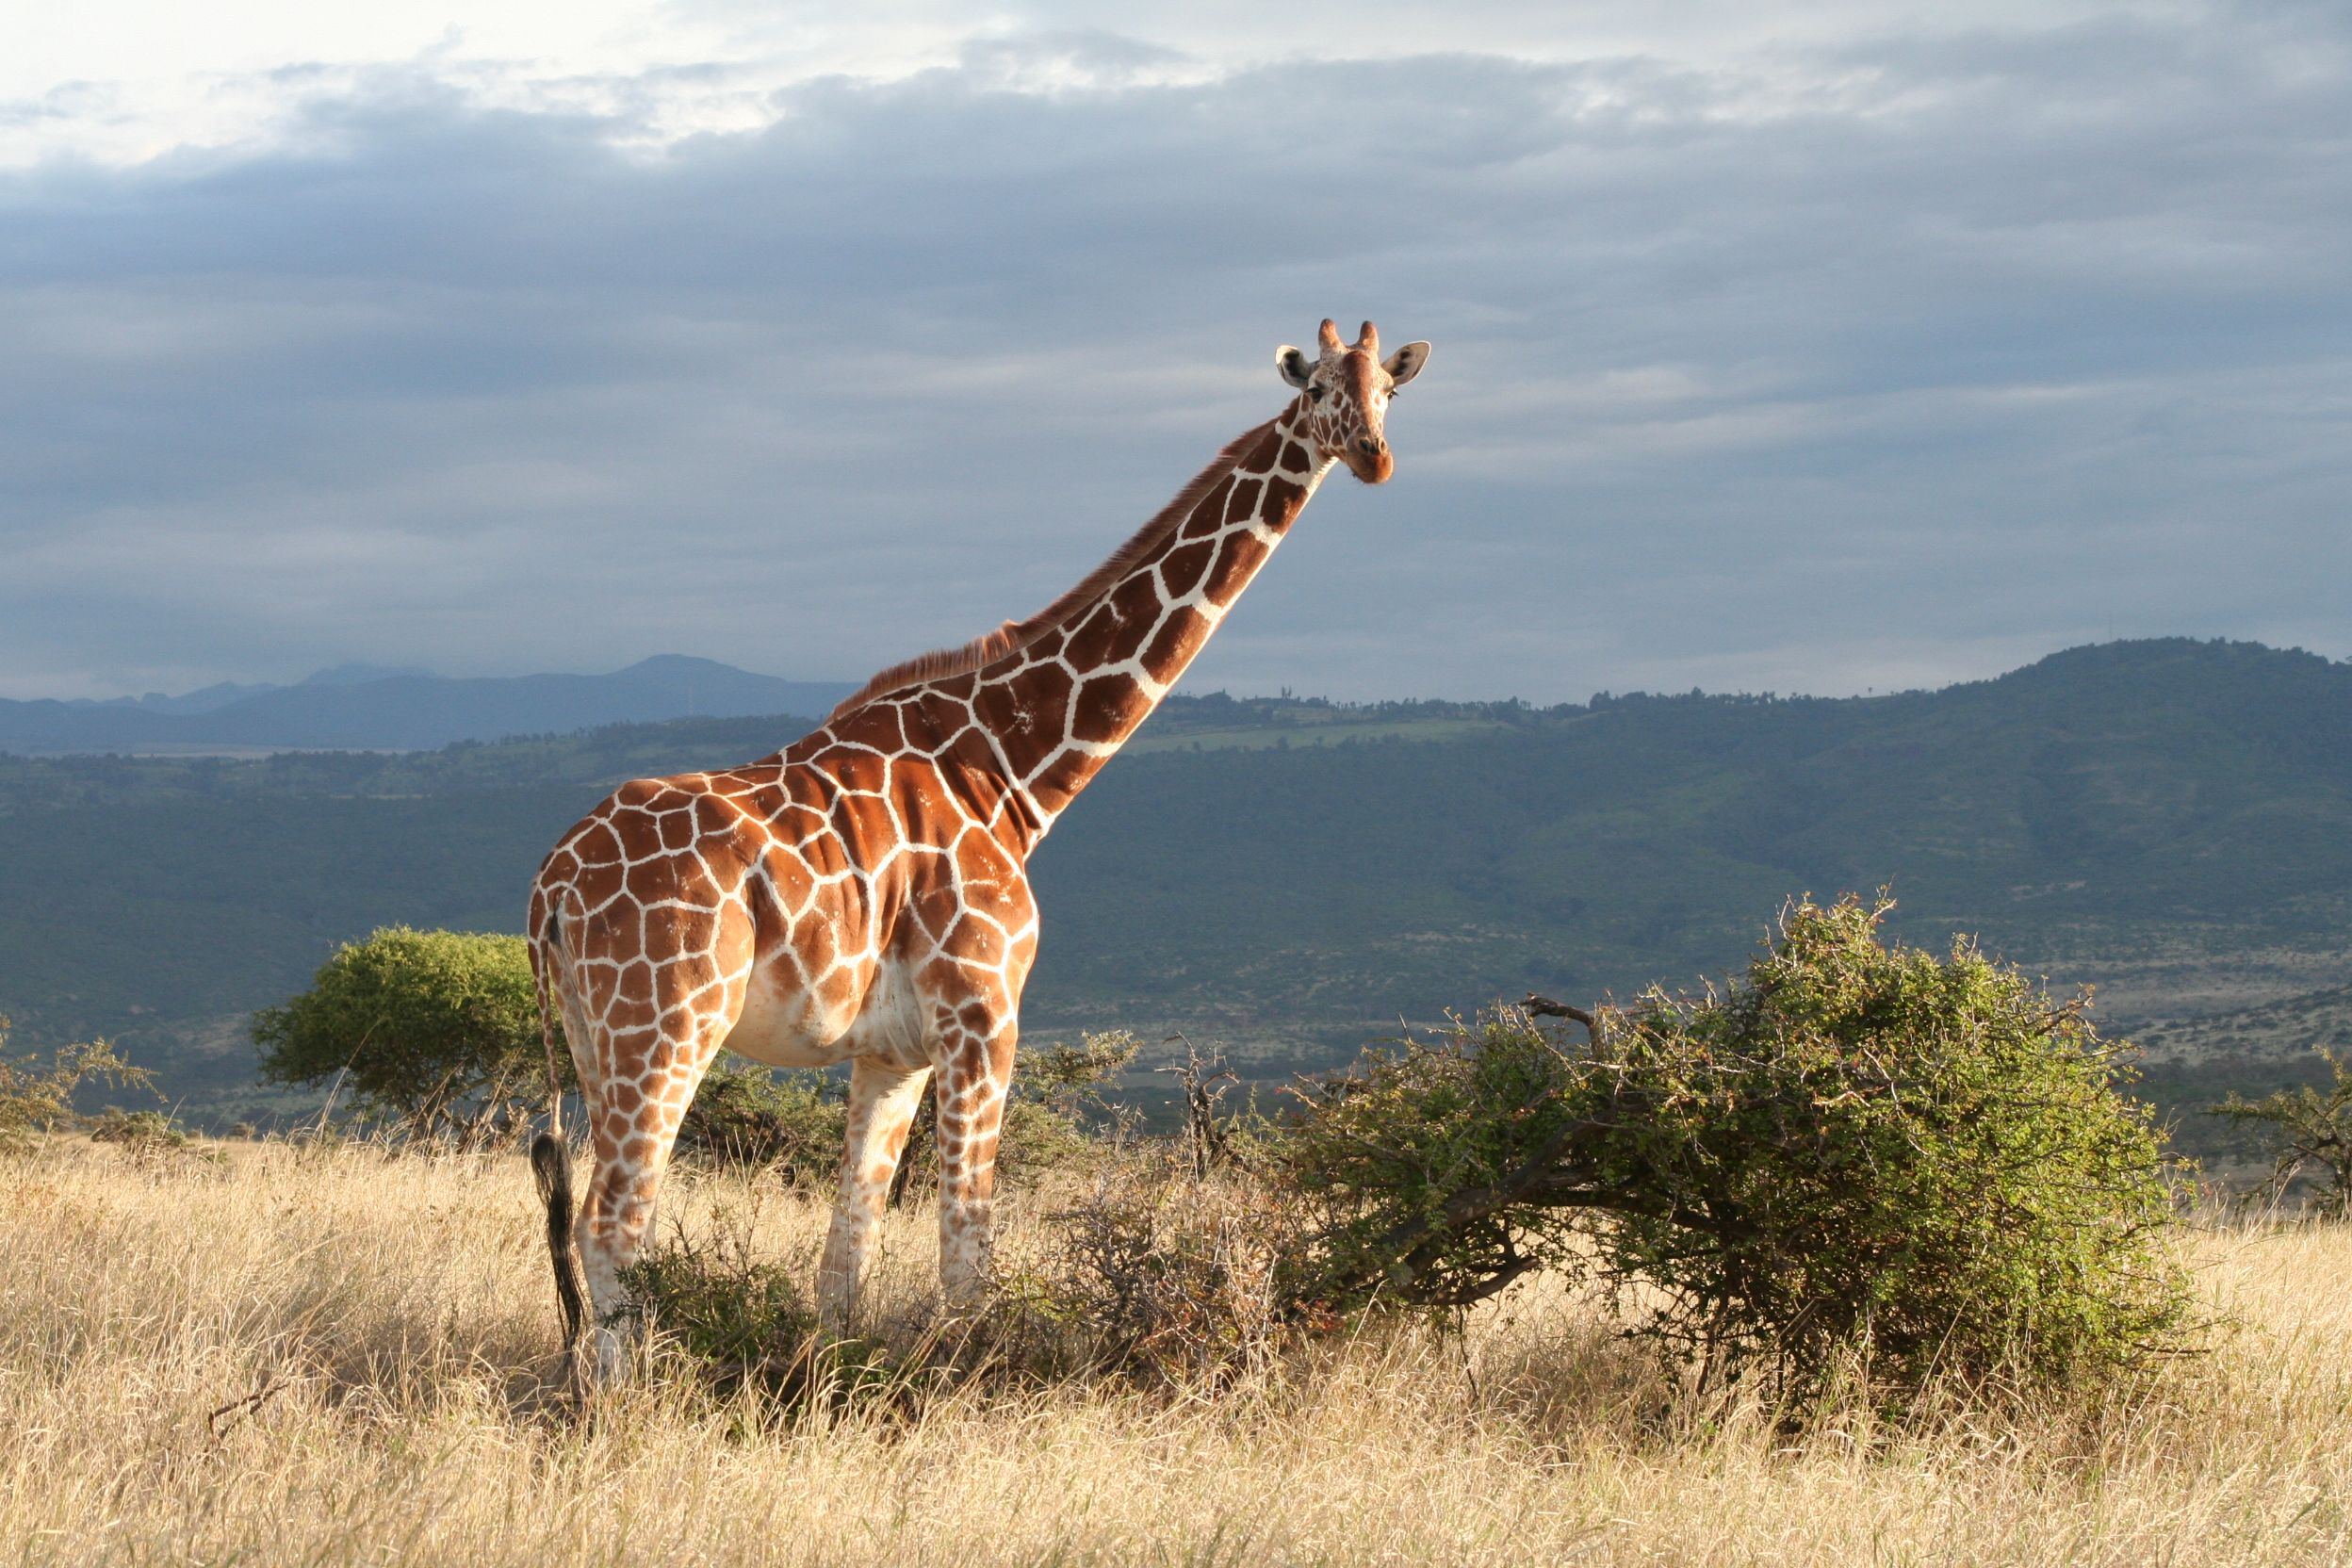 Giraffe grazing at Lewa Wilderness Conservancy in Kenya. The conservancy was set up due to poaching and since the number of wildlife has grown enormously